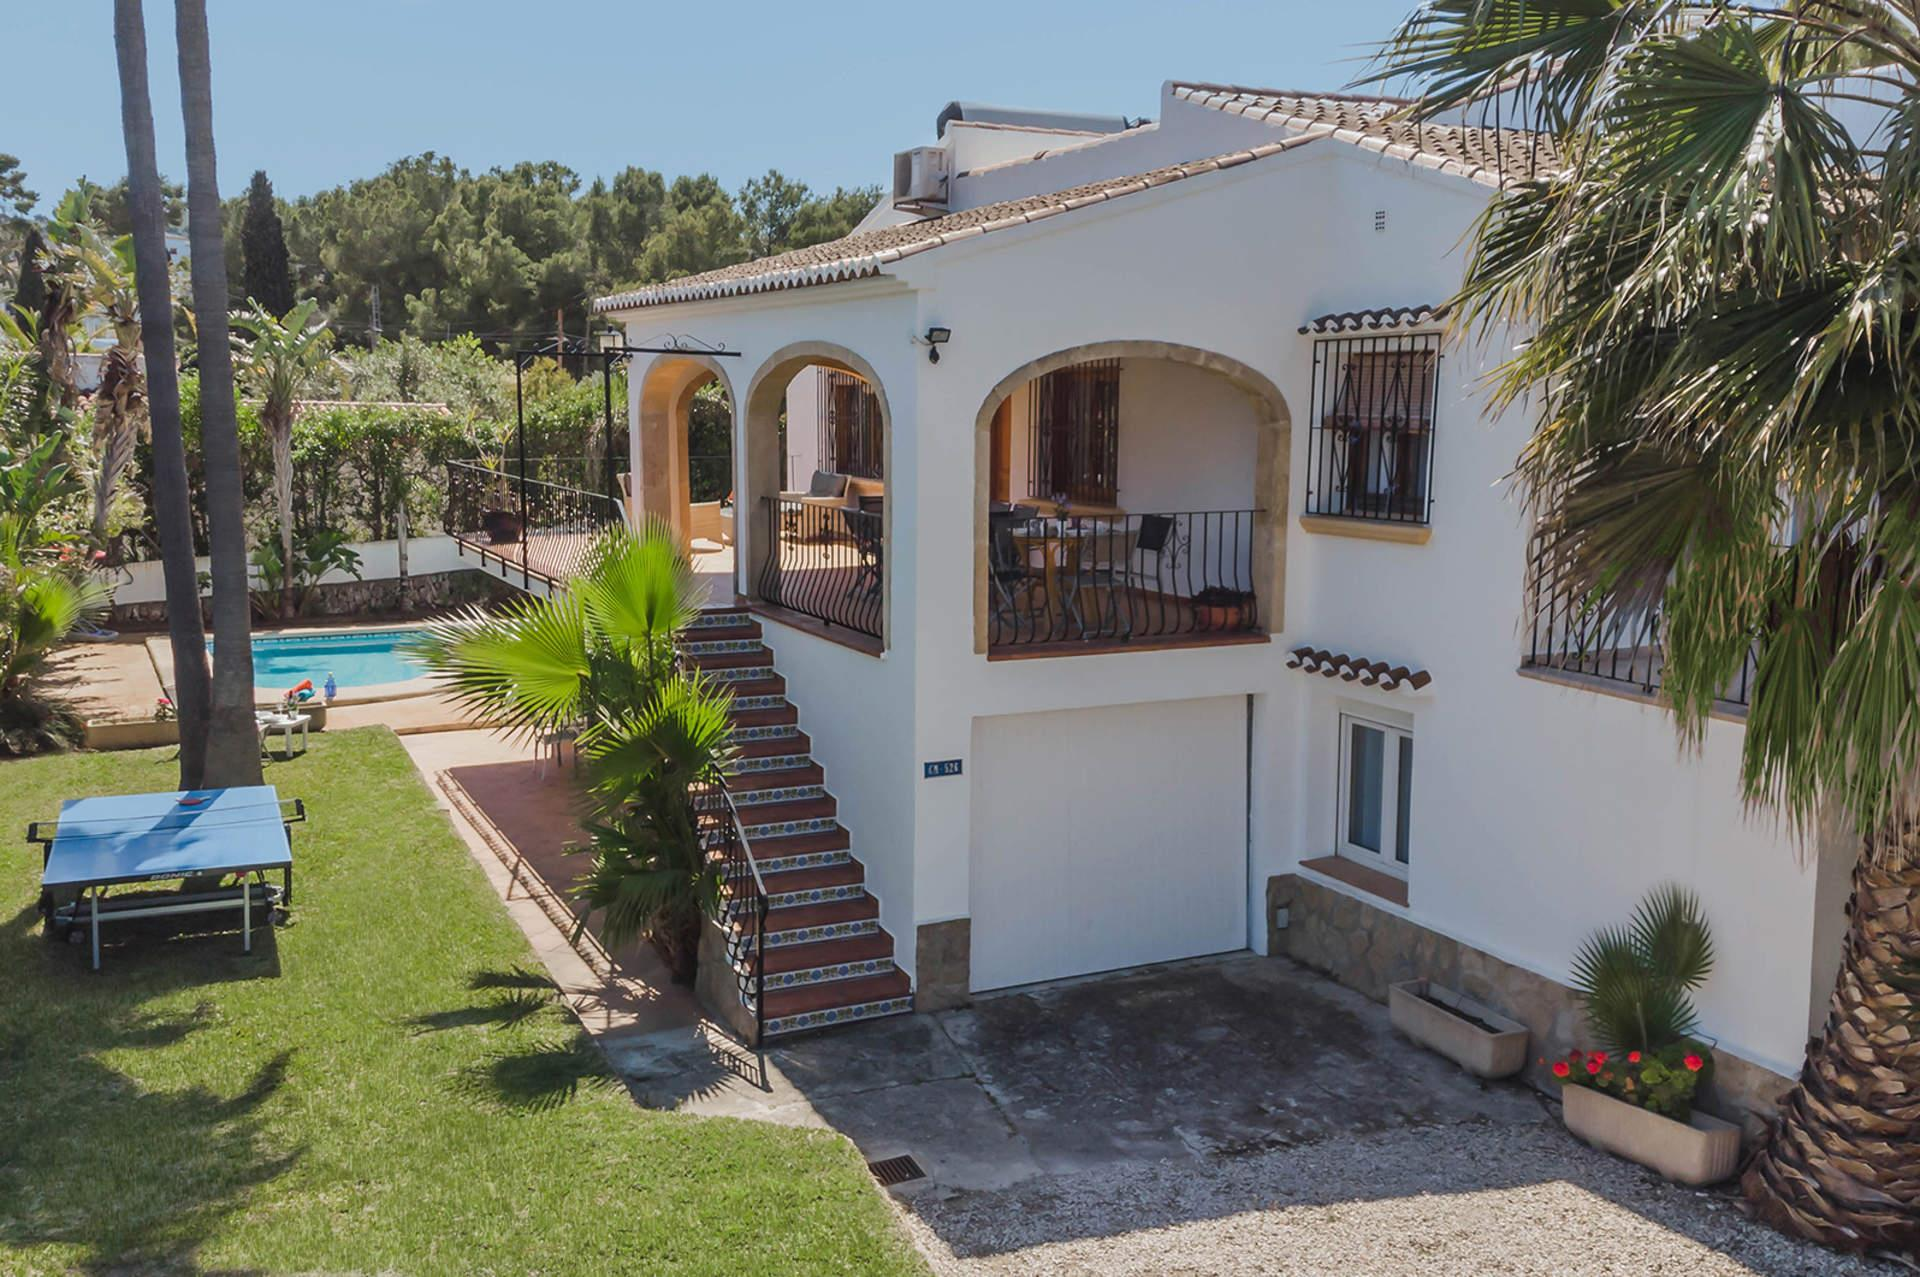 Florneu 8 pax, Large and nice villa in Javea, on the Costa Blanca, Spain  with private pool for 8 persons.....